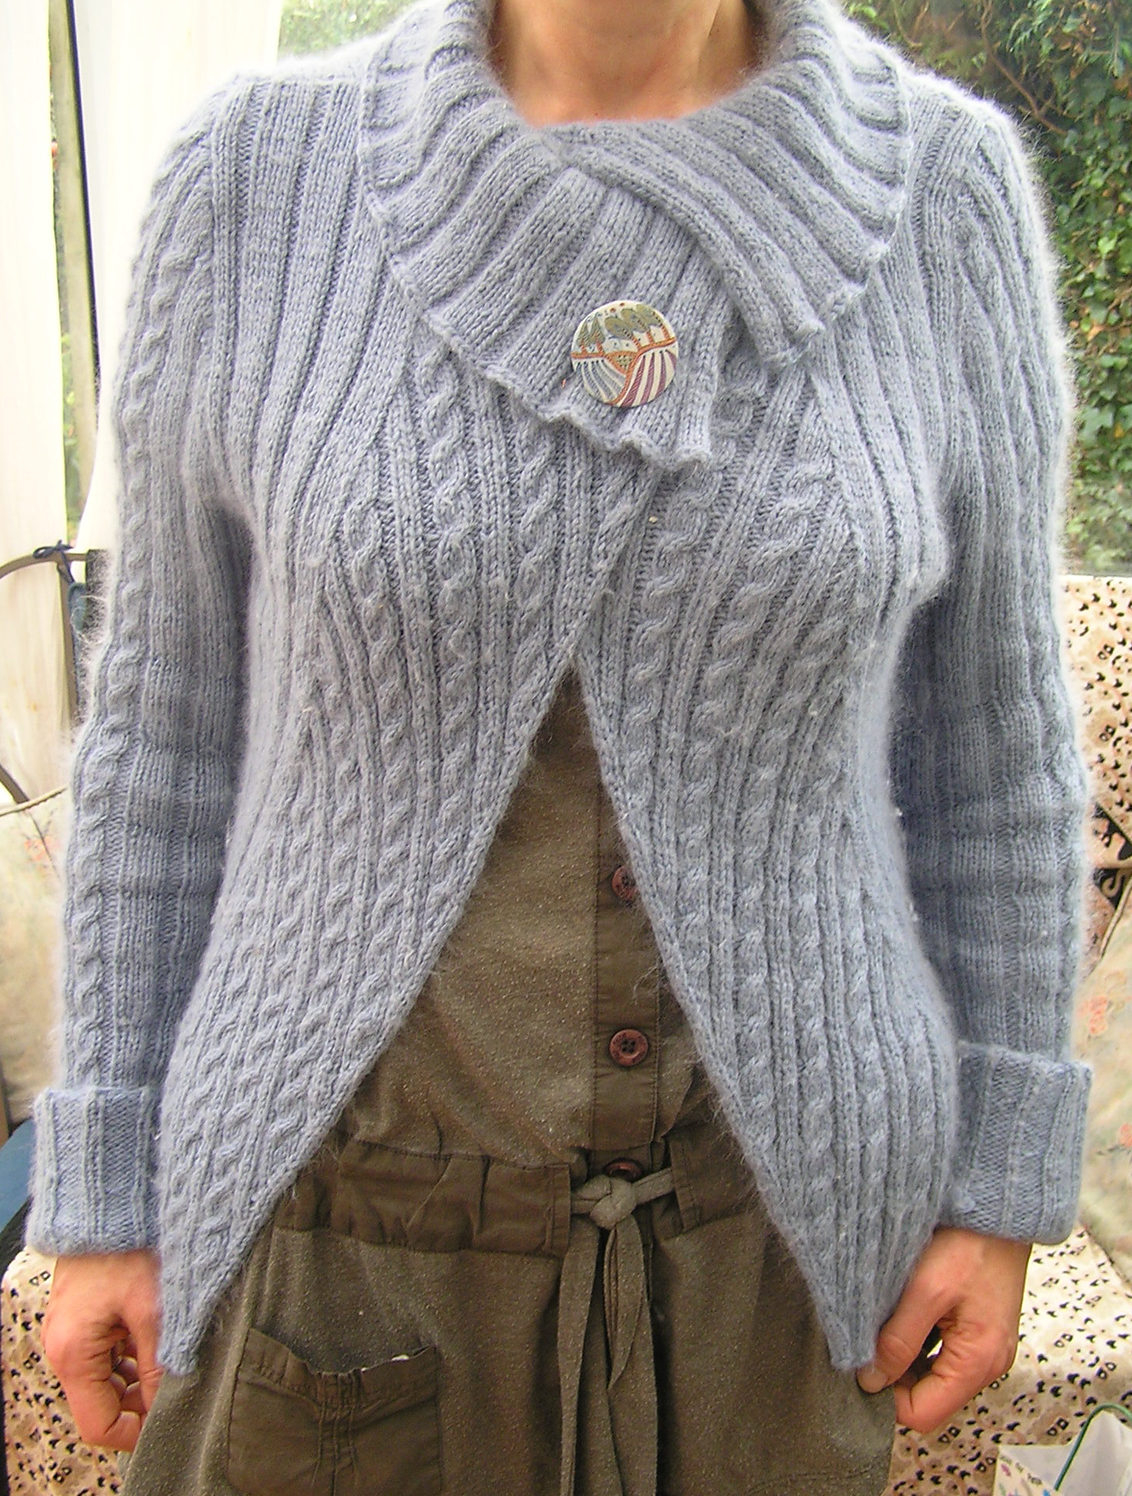 Free Knitting Patterns For Sweater Coats Wrap Cardigan Knitting Patterns In The Loop Knitting